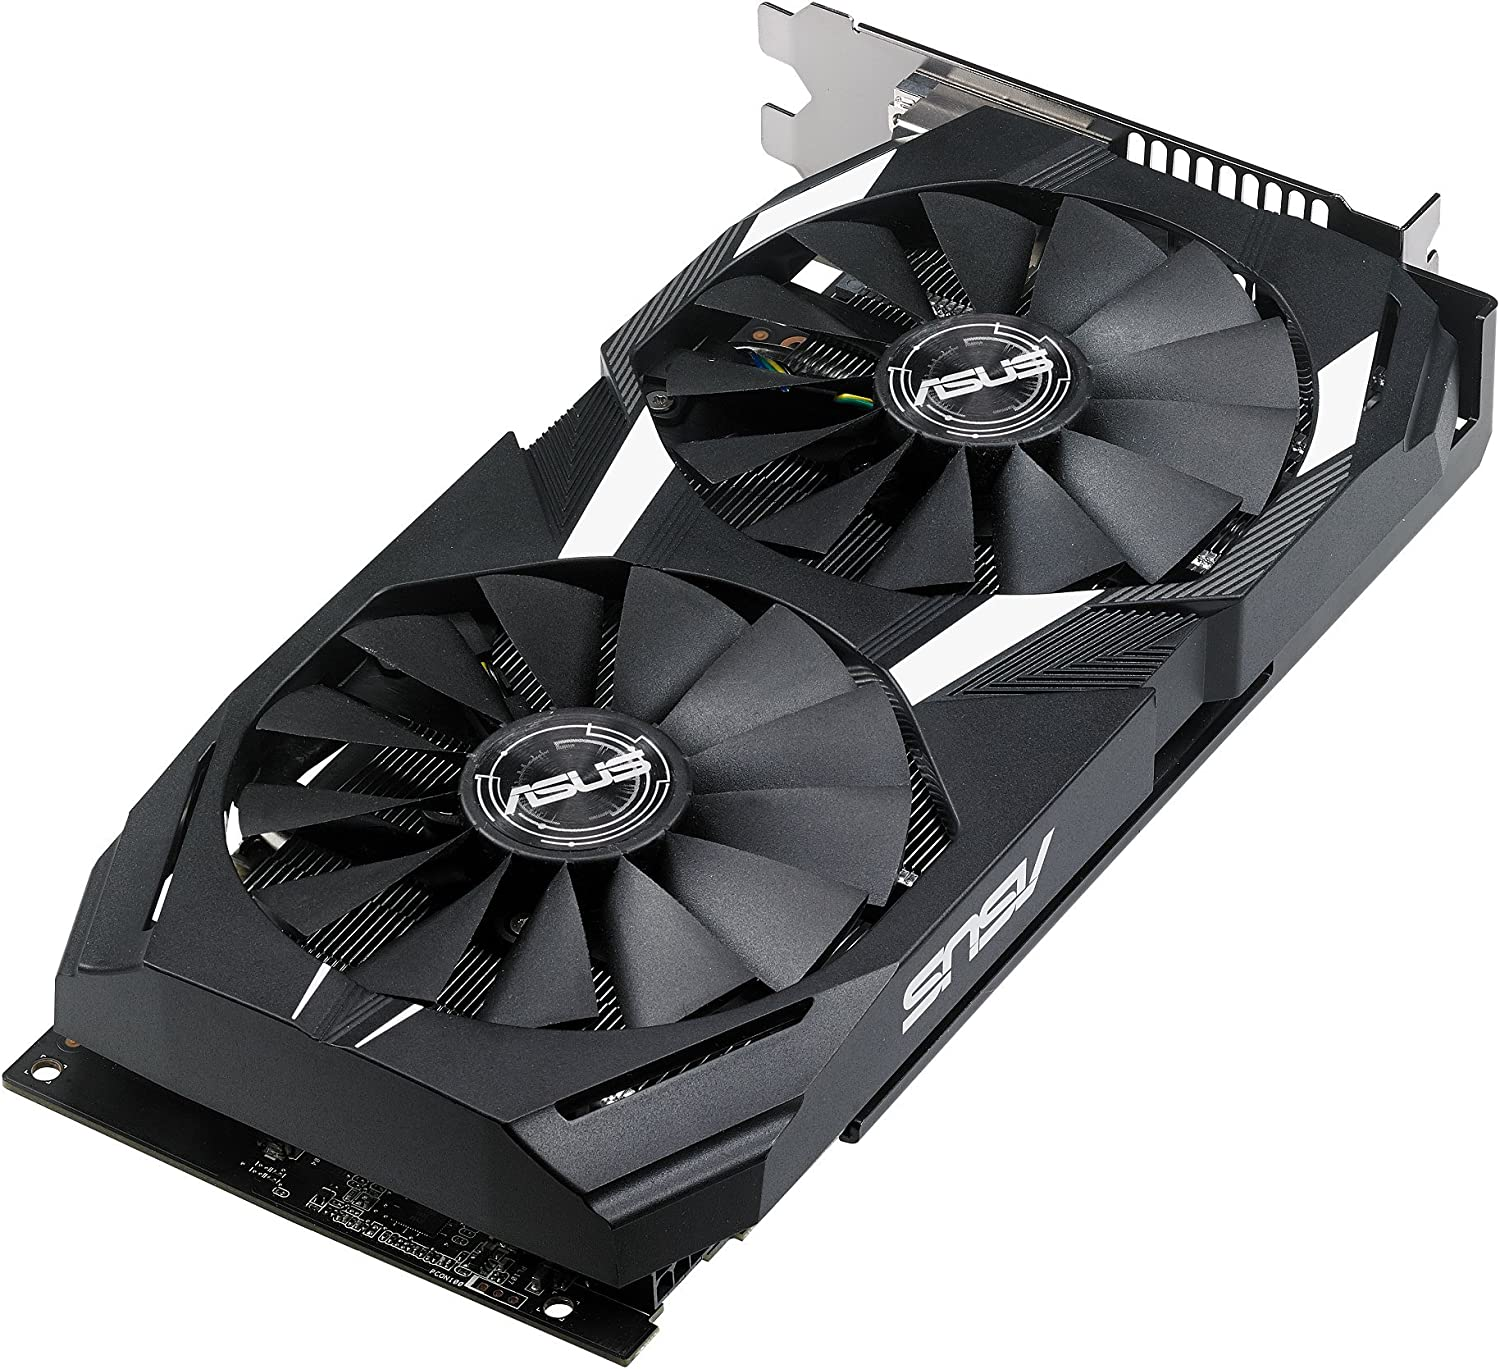 Asus Radeon RX 580 8GB Dual GPU Graphics Card AMD